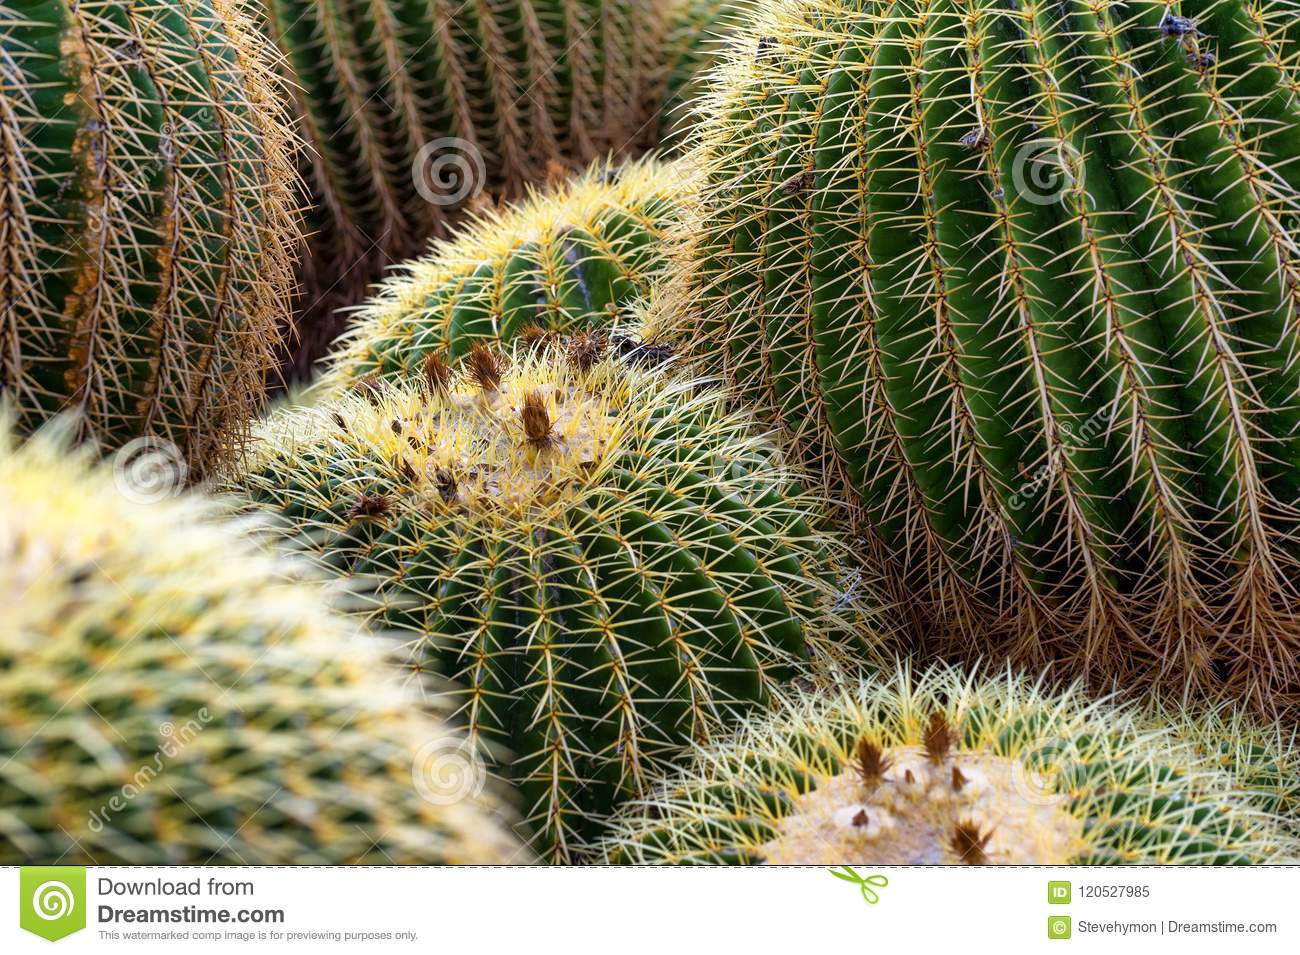 Patterns in a patch of barrel cactus